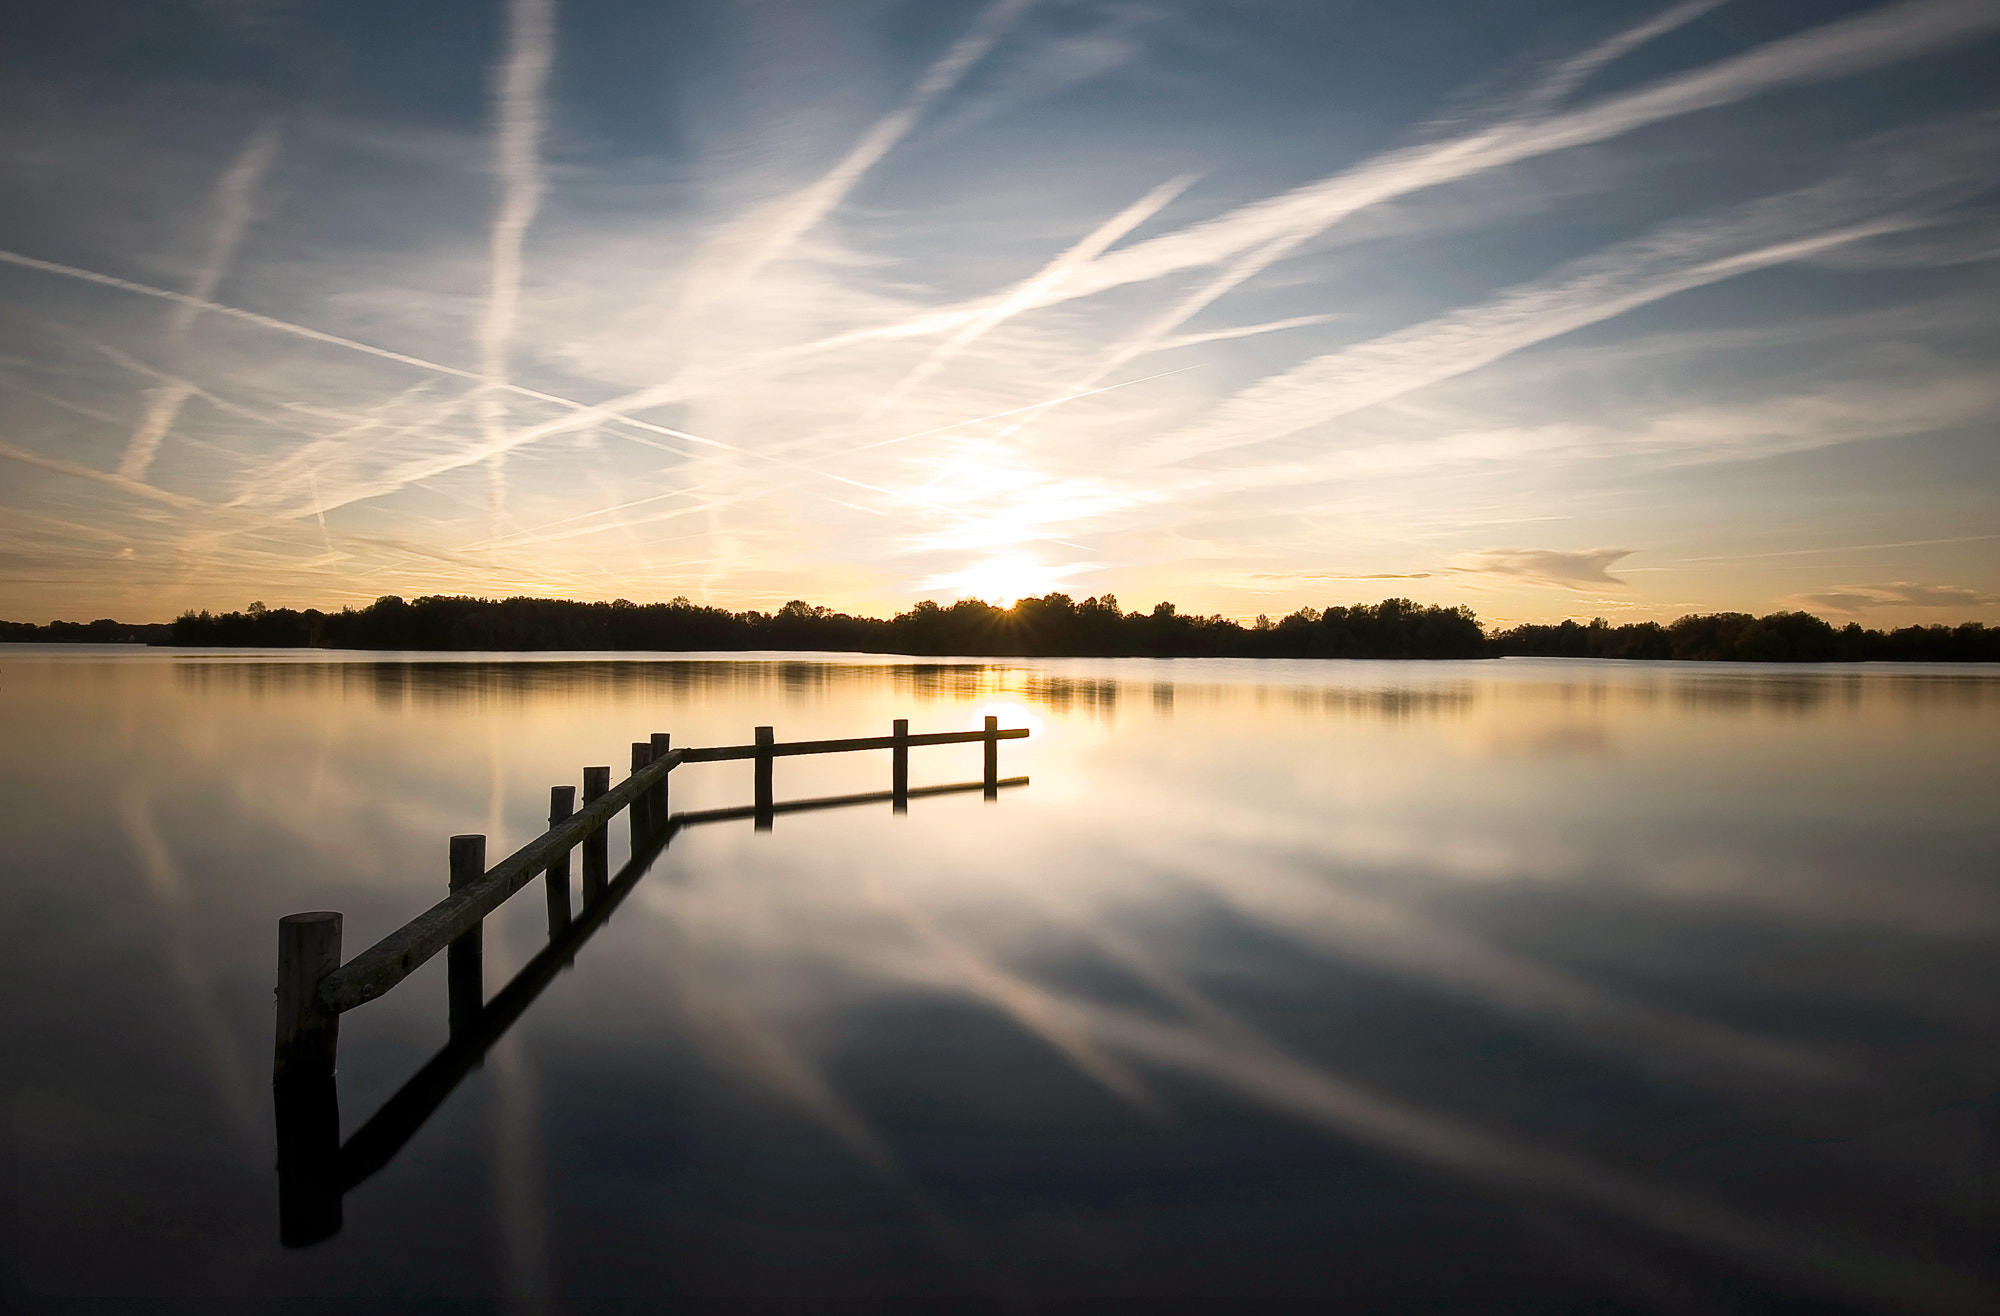 Photograph Reflected Flights by Daniel Bosma on 500px